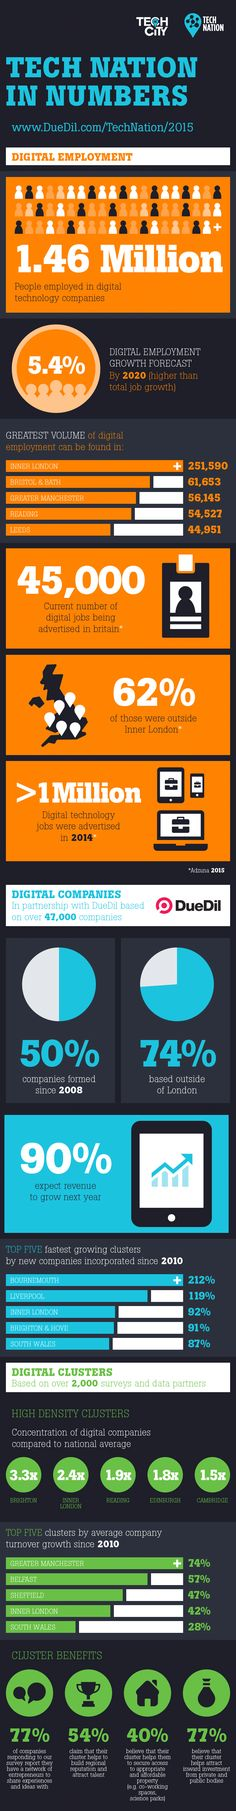 Tech Nation in Numbers #infographic #Technology #Career